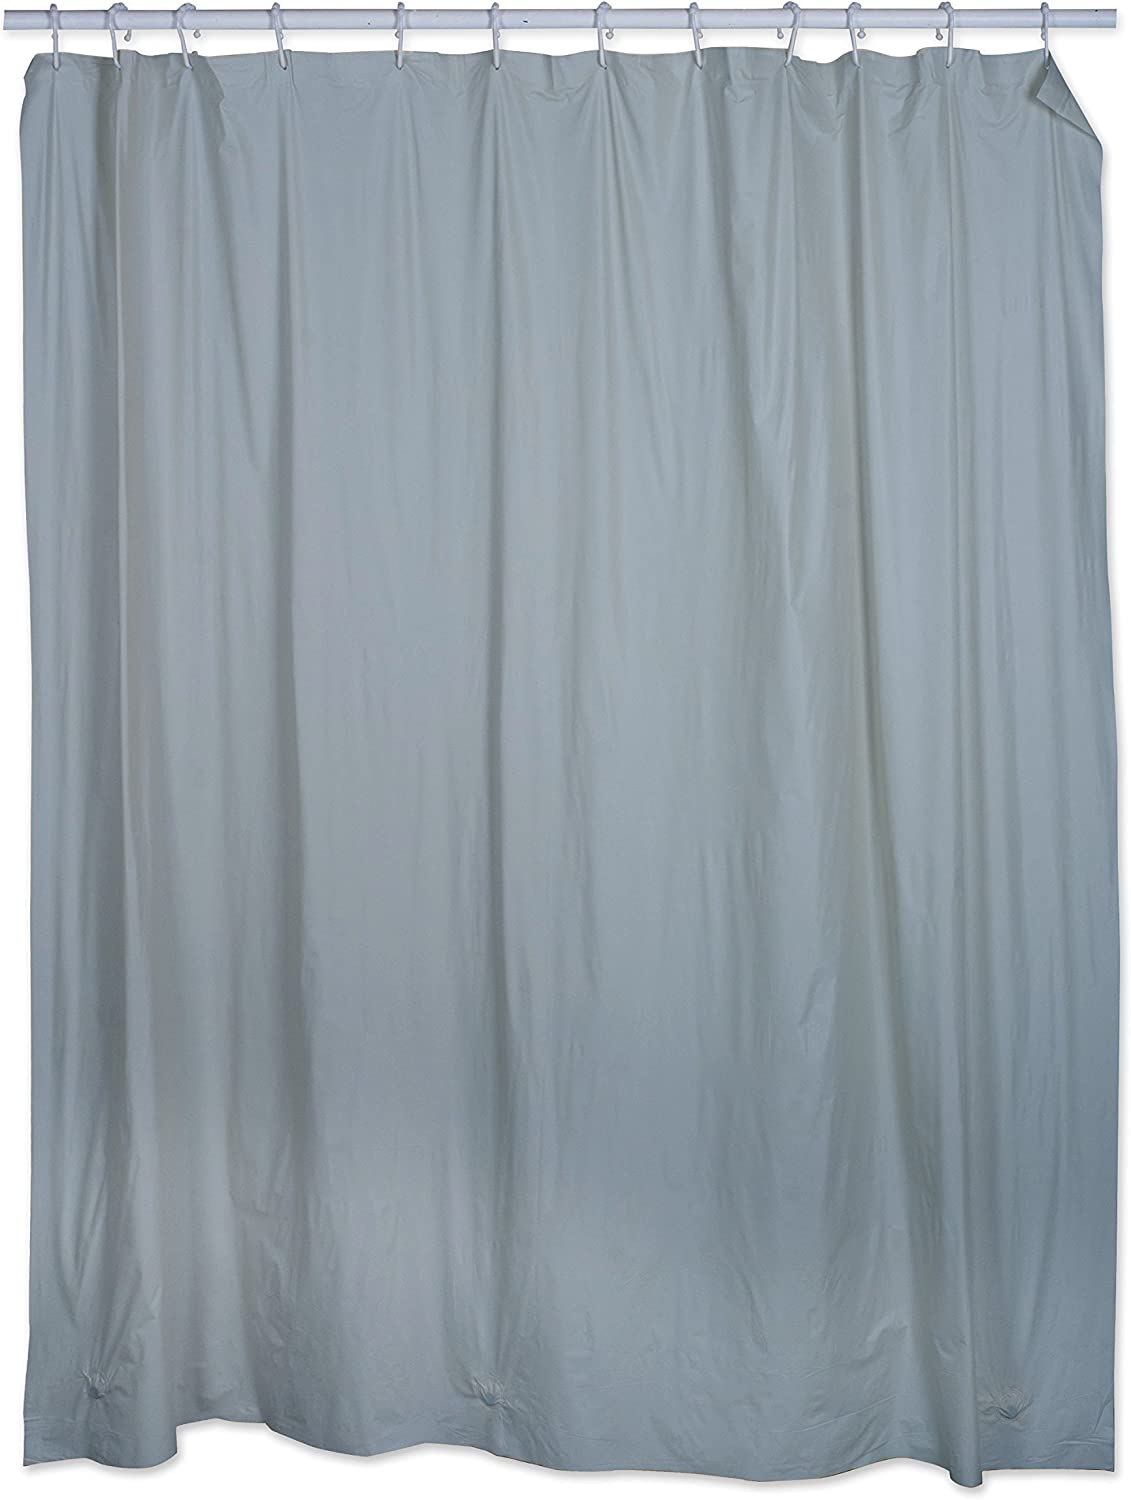 J & M Home Fashions Antibacterial & Mold Resistant Shower Curtain, Liner, Blue